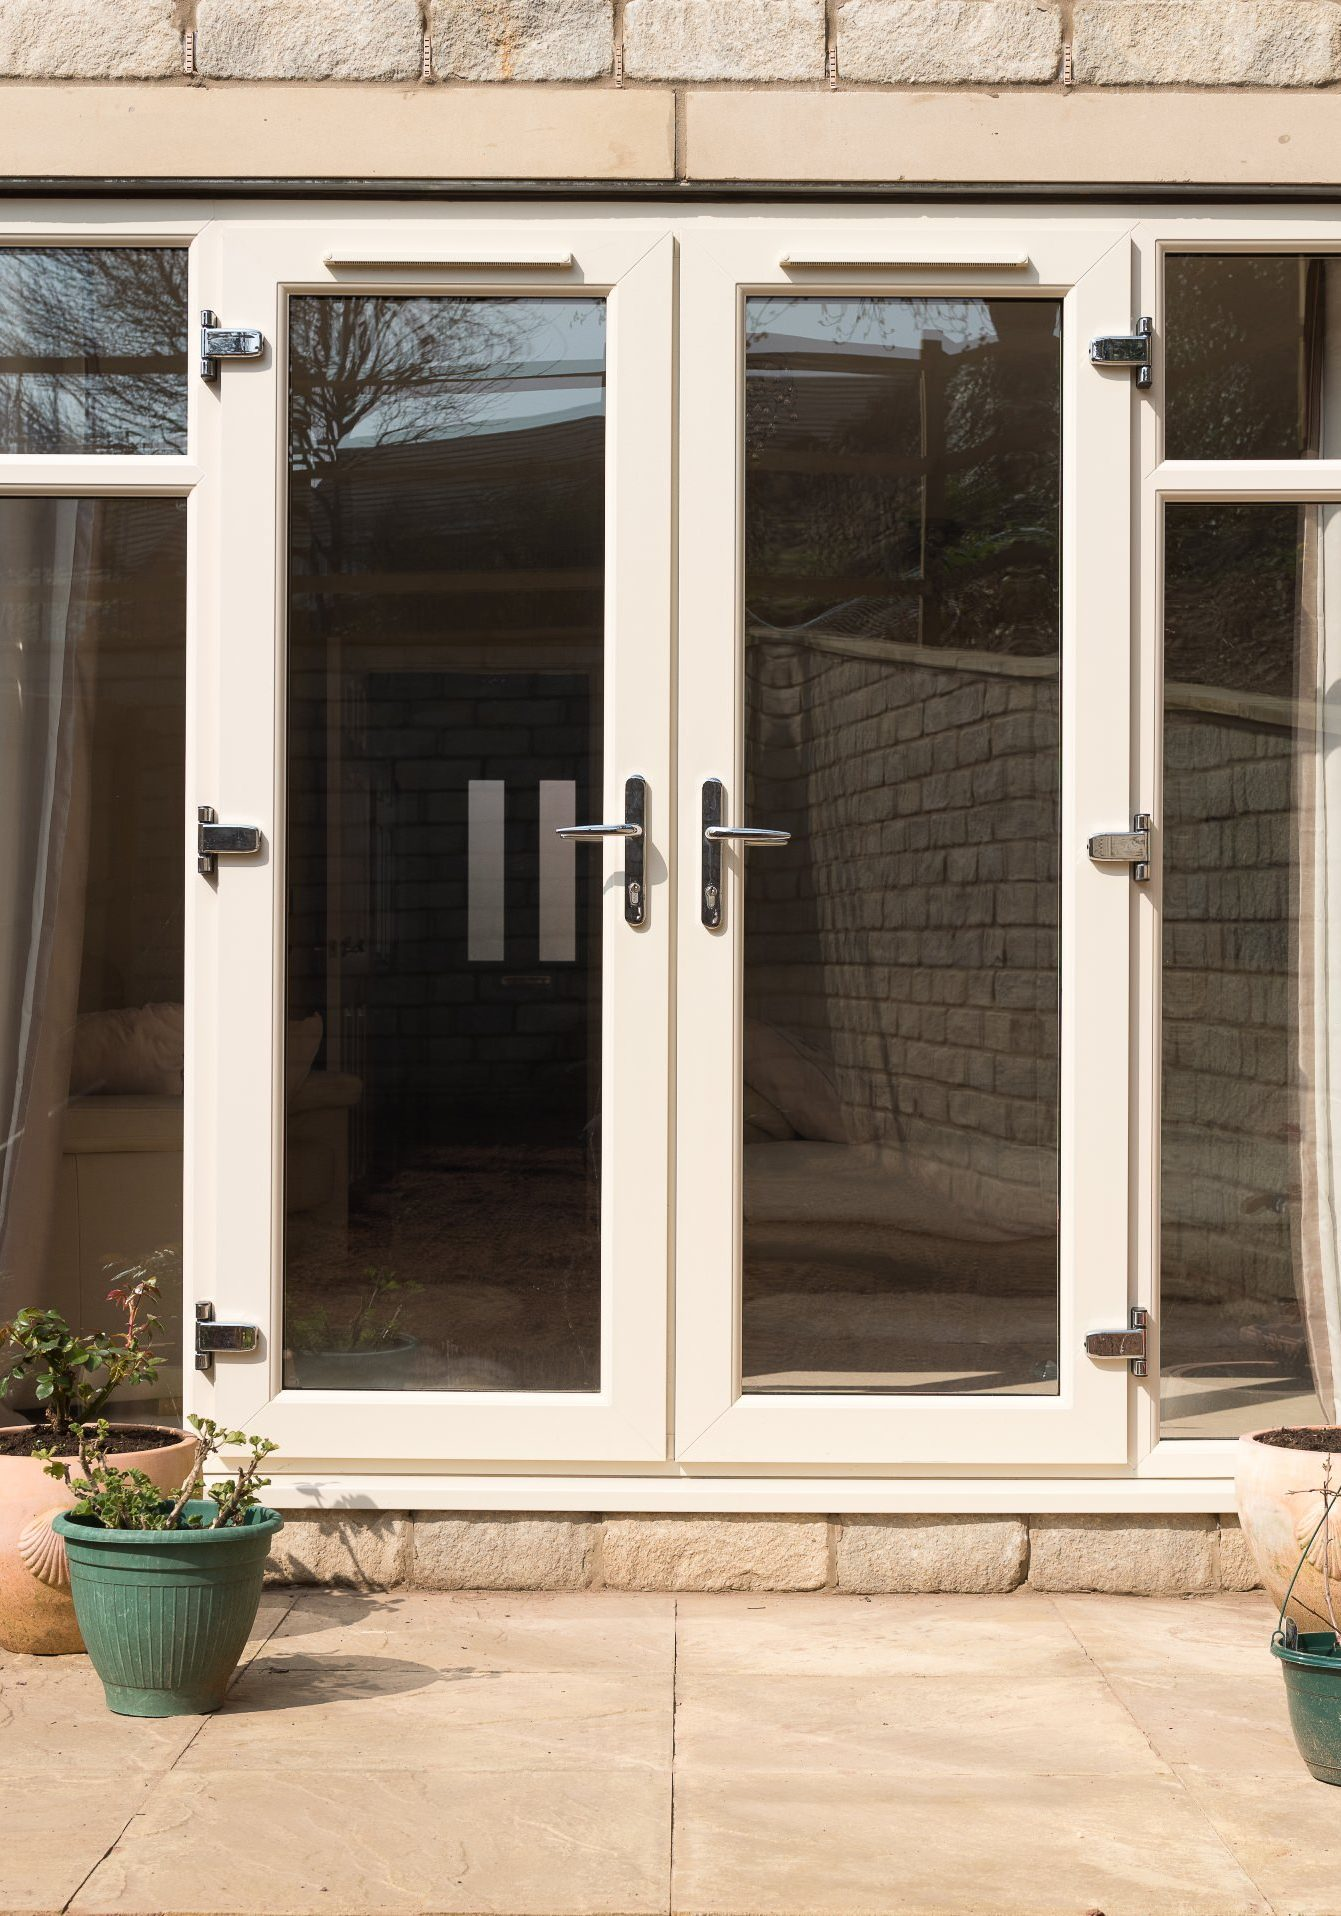 upvc french doors with side oopening windows